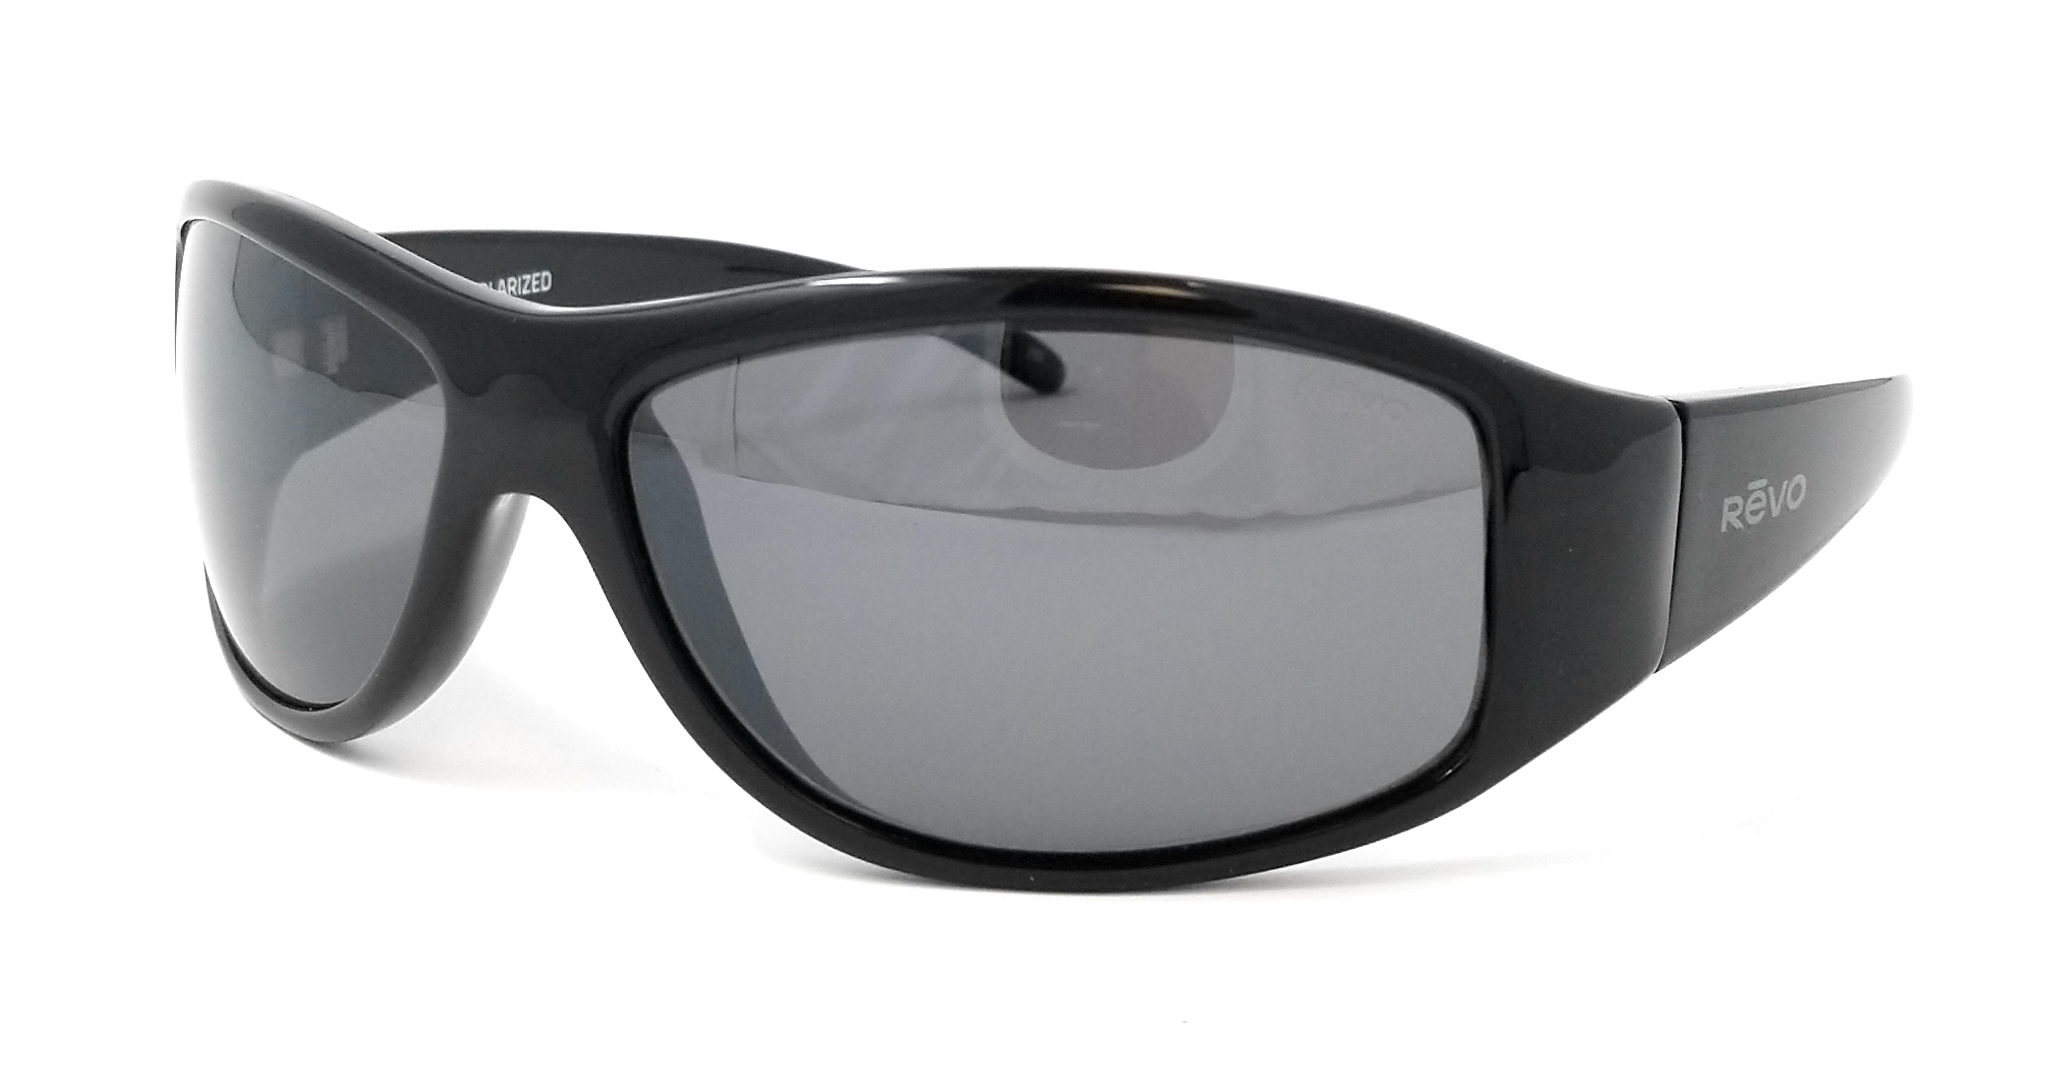 1b9f08a333 Revo Unisex Revo RE 5014 01 GY Tander Polarized Wraparound Sunglasses Black